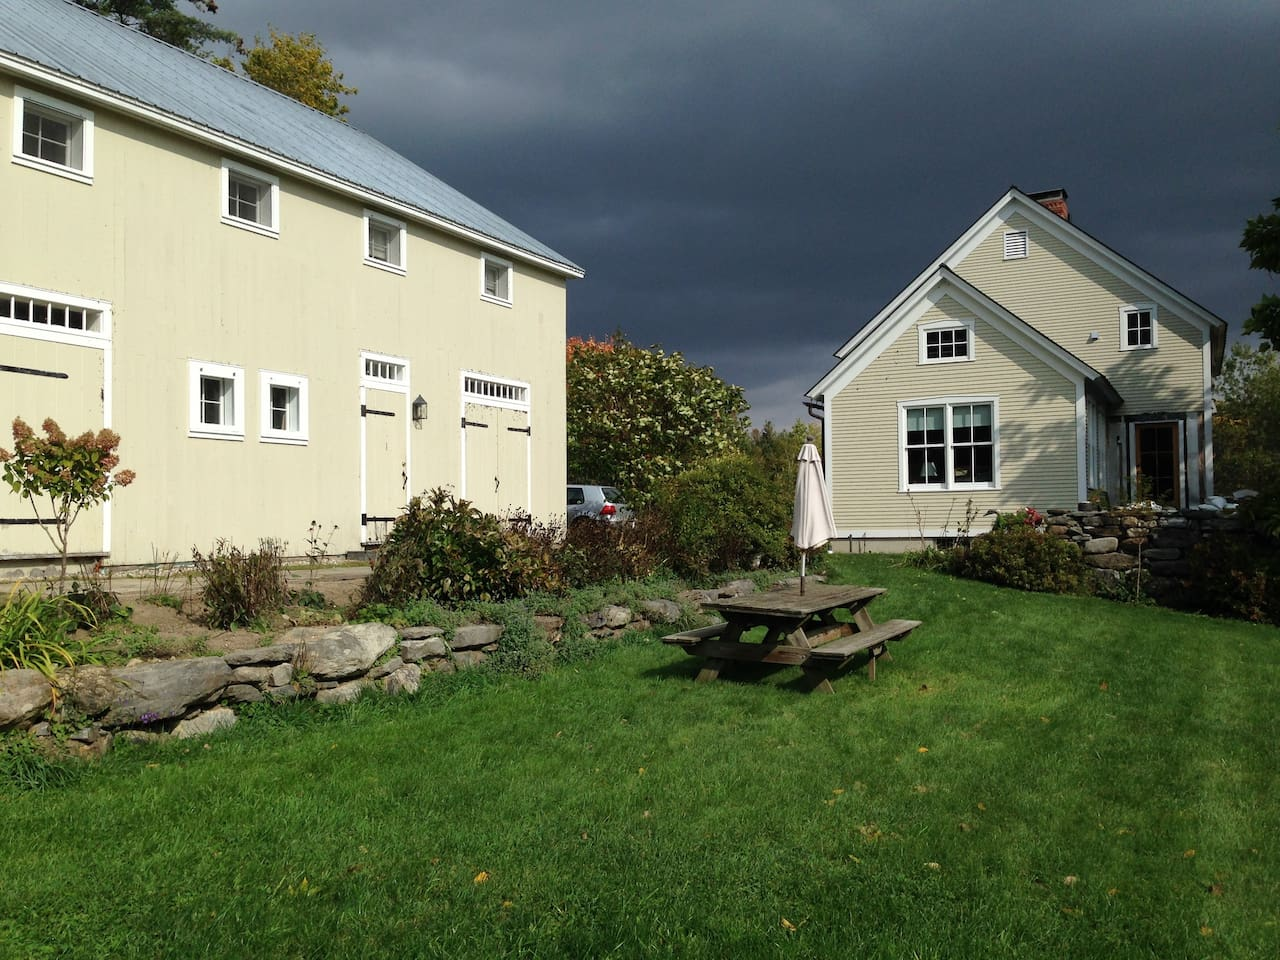 A blustery day in Vermont. Apartment is through center door in building on left.